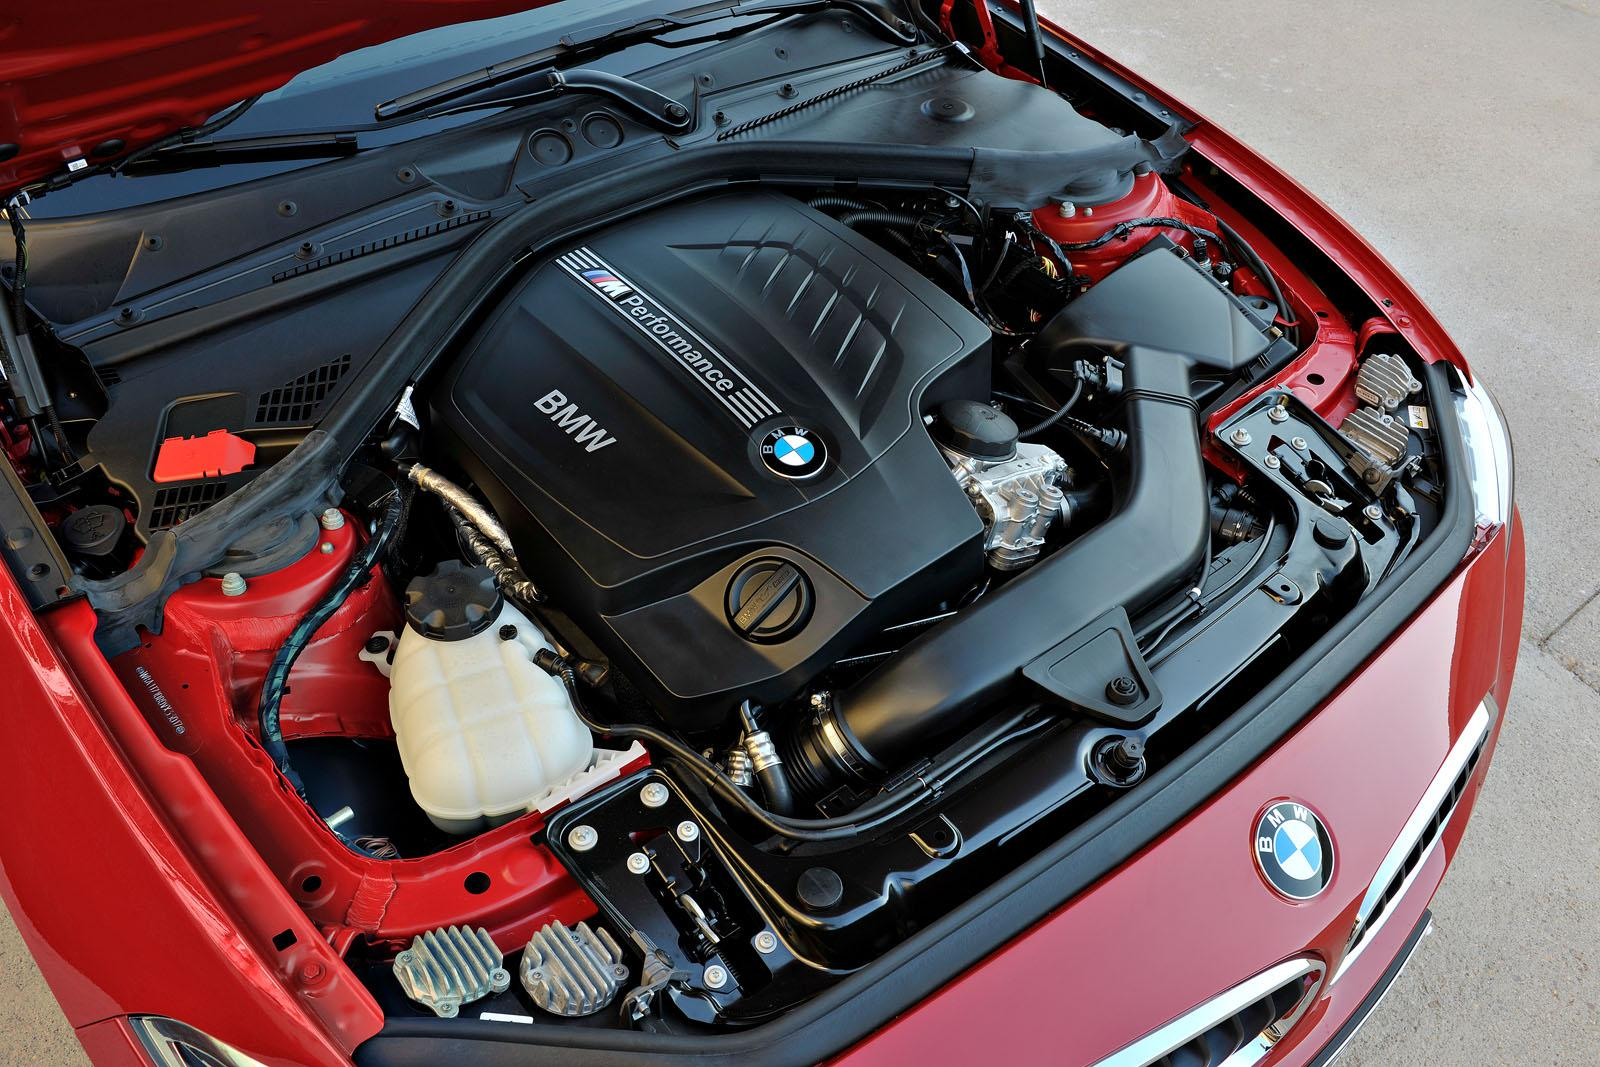 BMW 2 Series engine